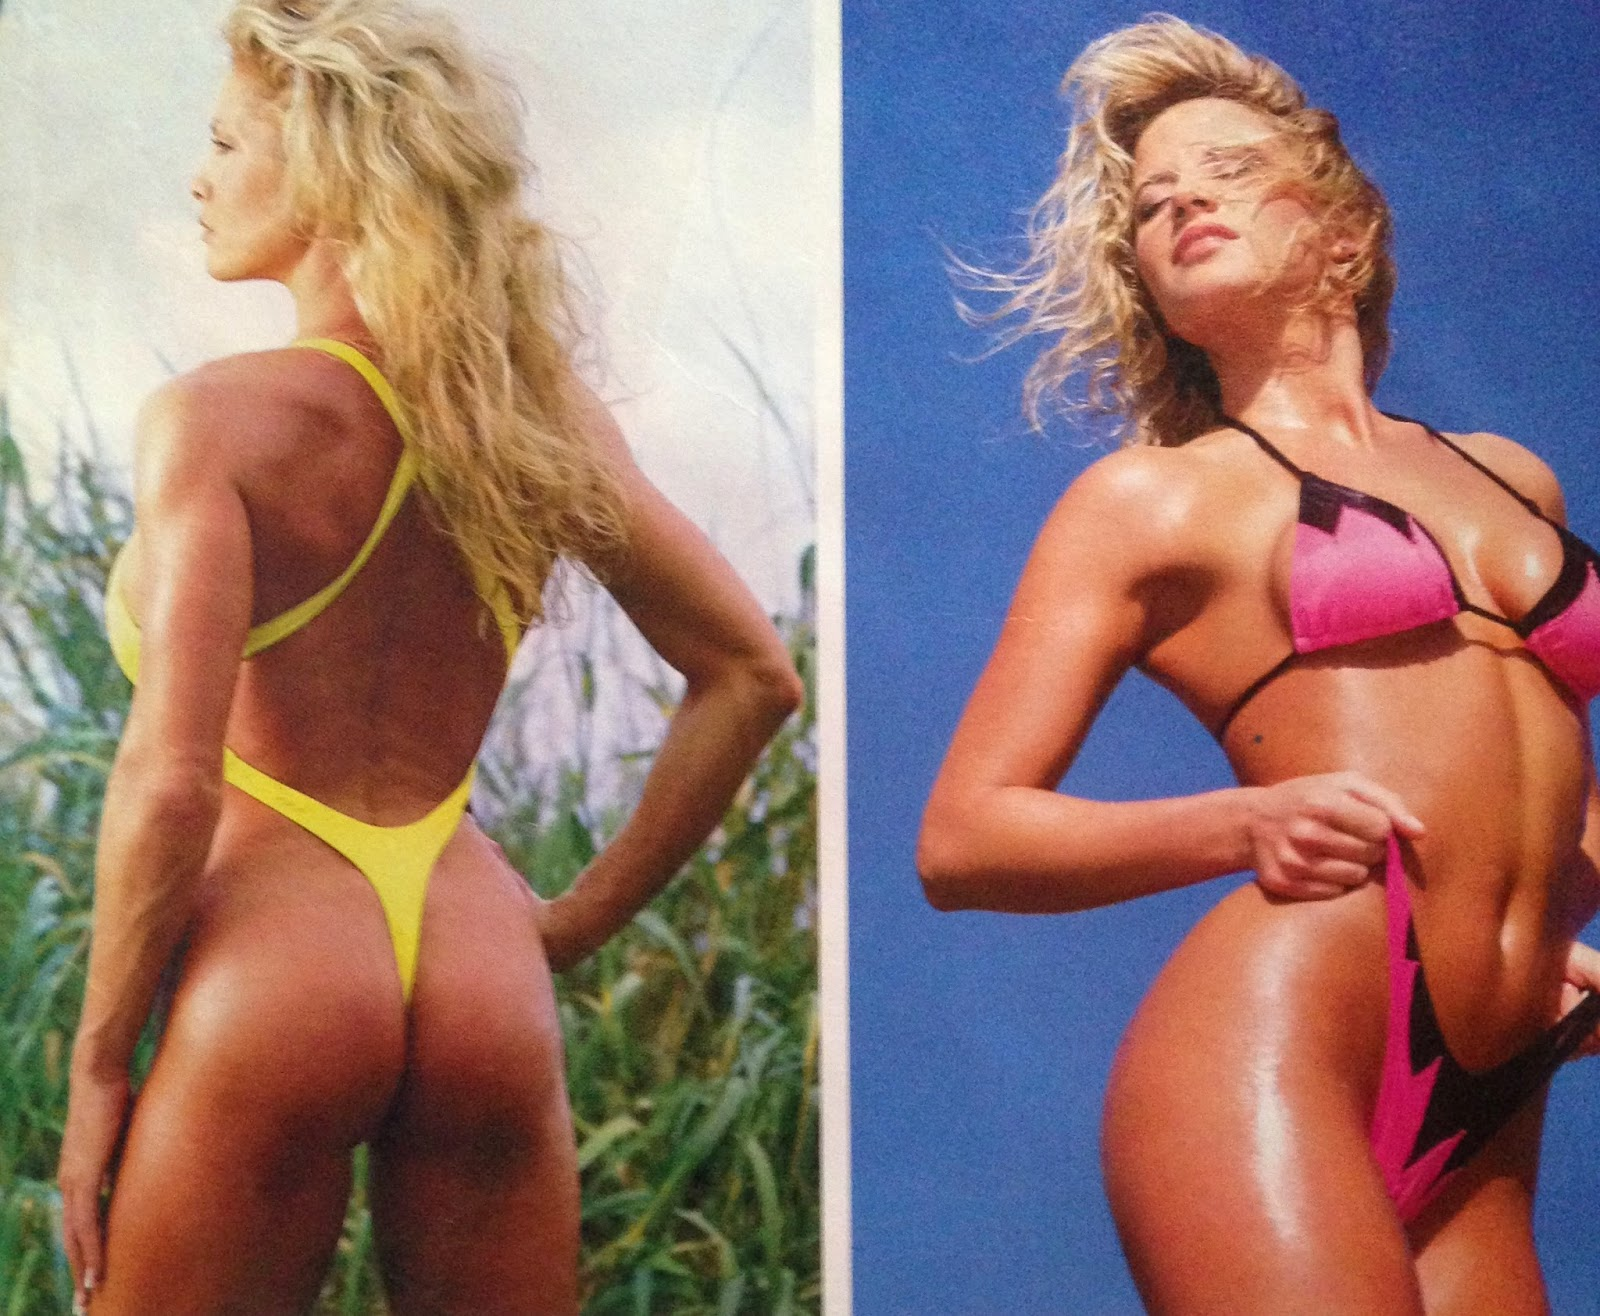 WWE: WWF RAW MAGAZINE - January 1998 - Sunny and Sable in their swimsuits